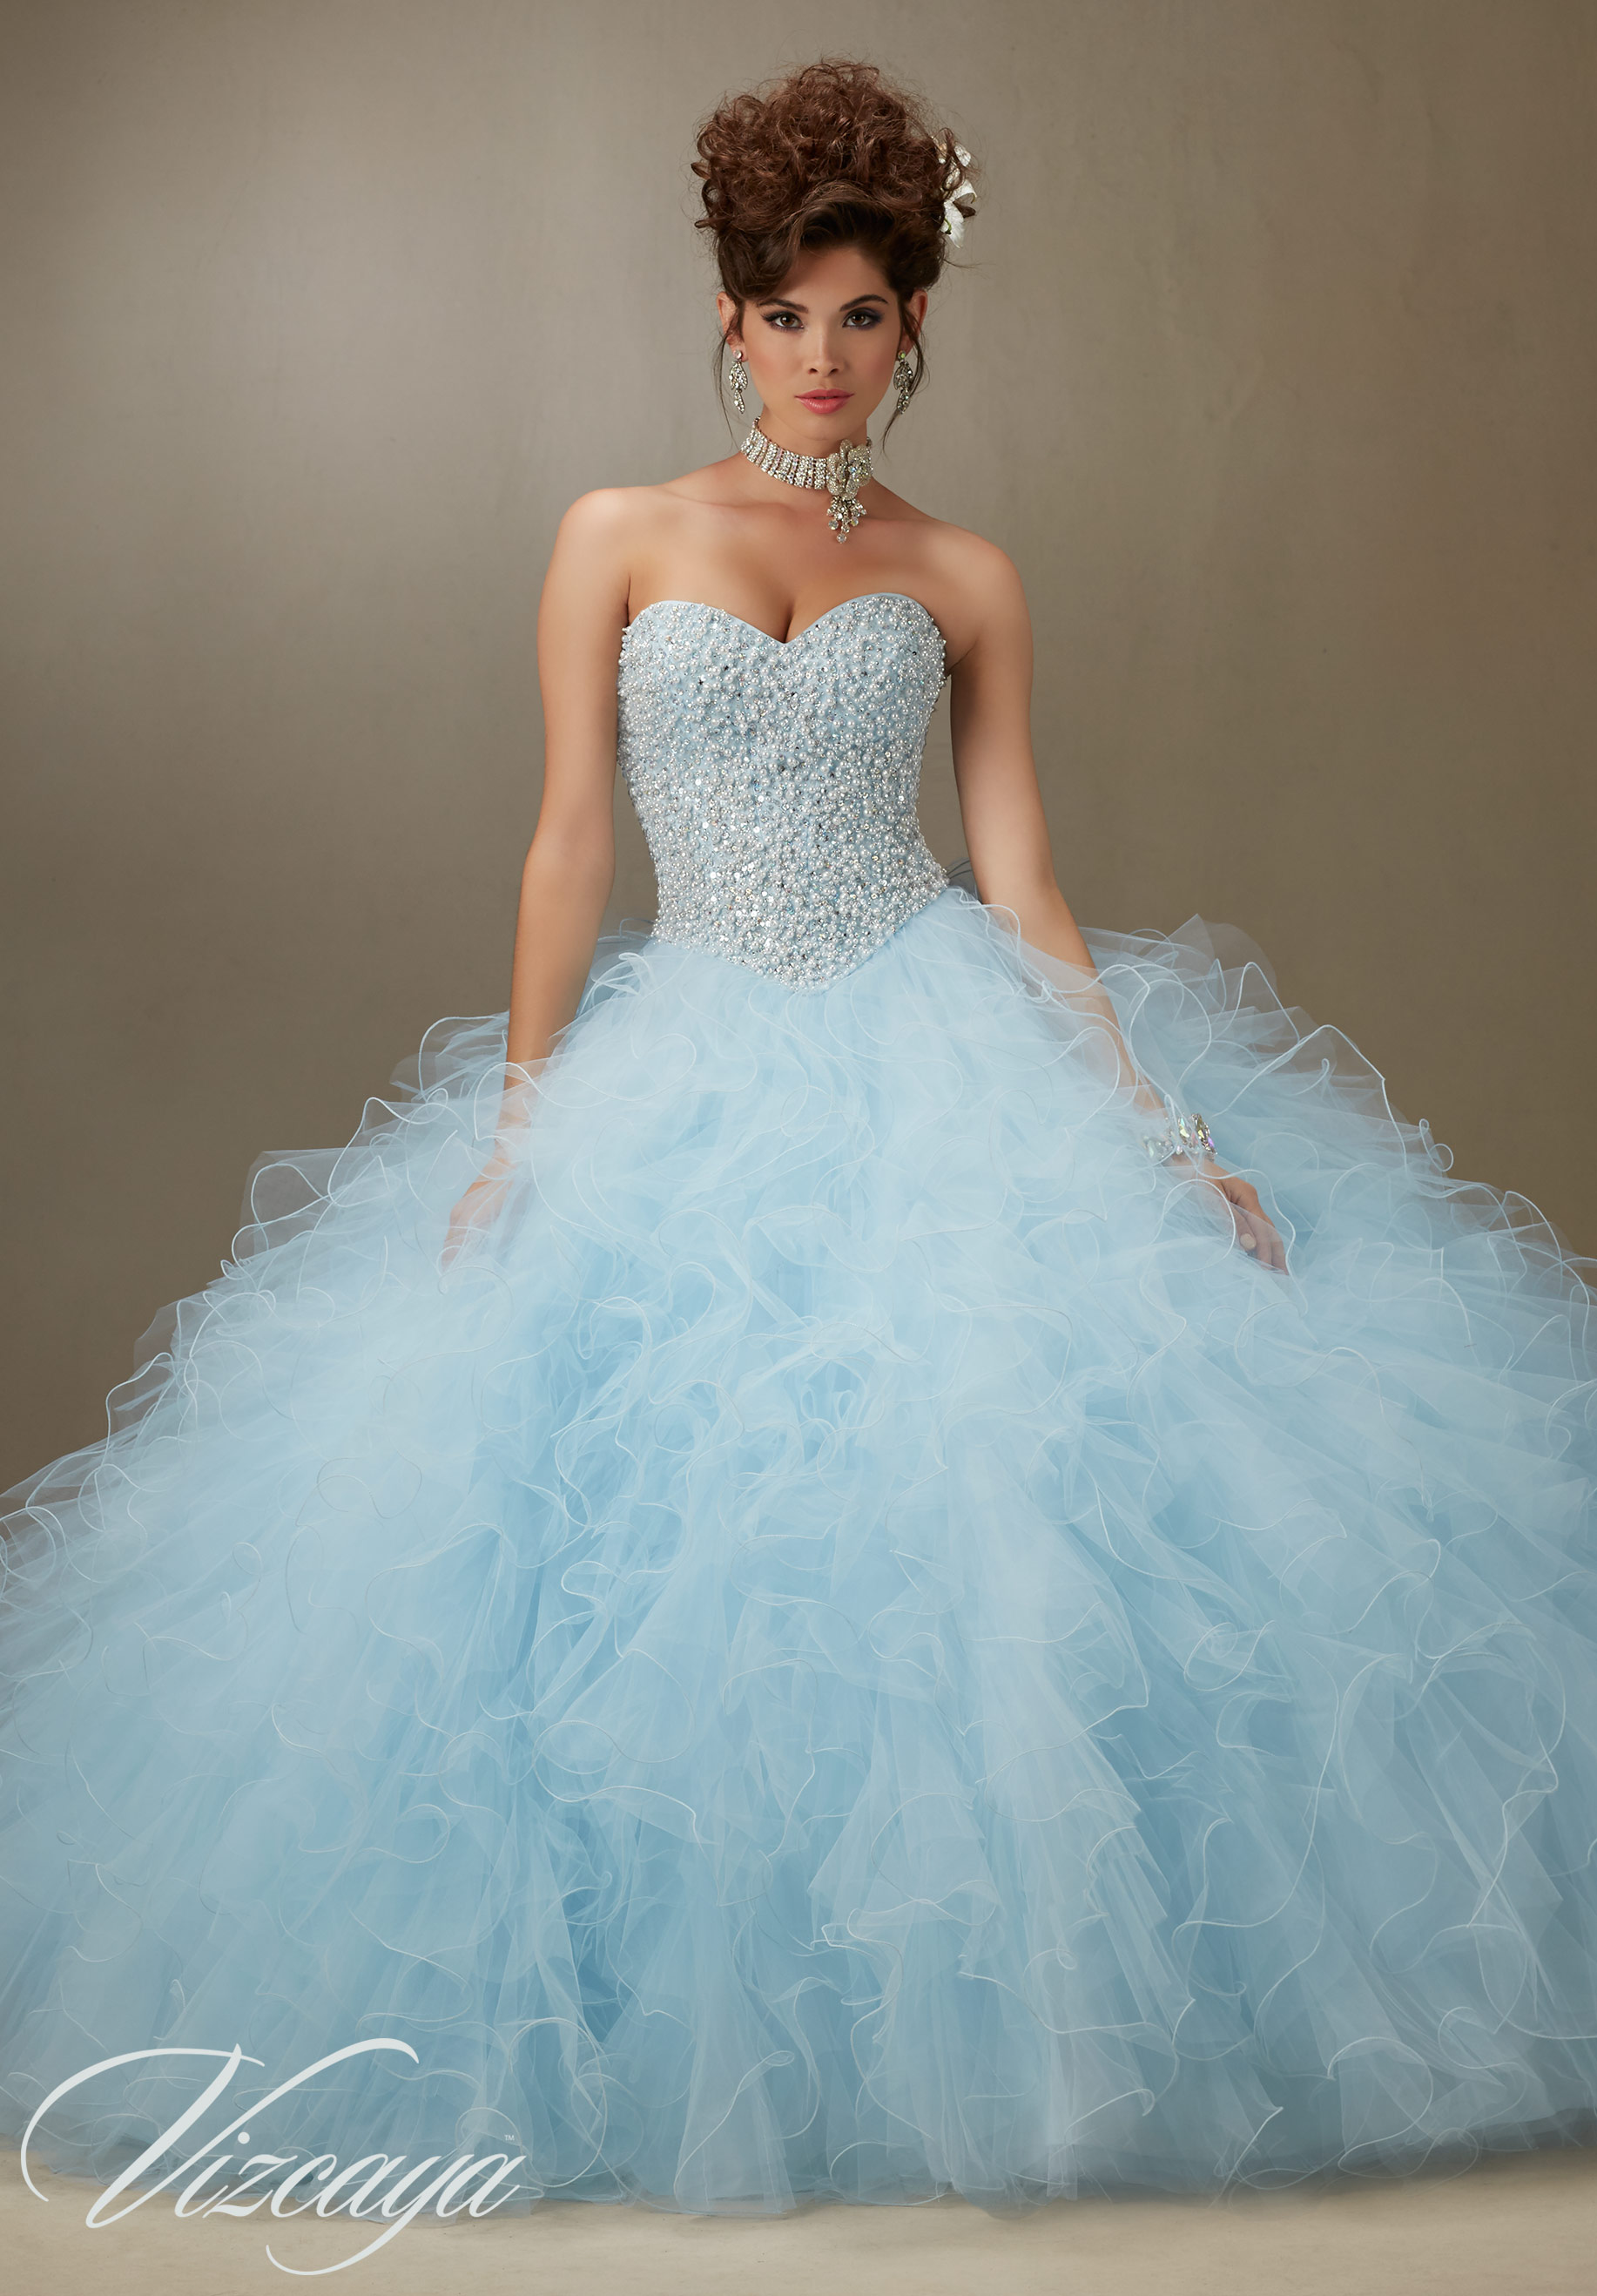 3f84481a5 Quinceanera Dress 89077 PEARL BEADED BODICE ON A RUFFLED TULLE BALL GOWN